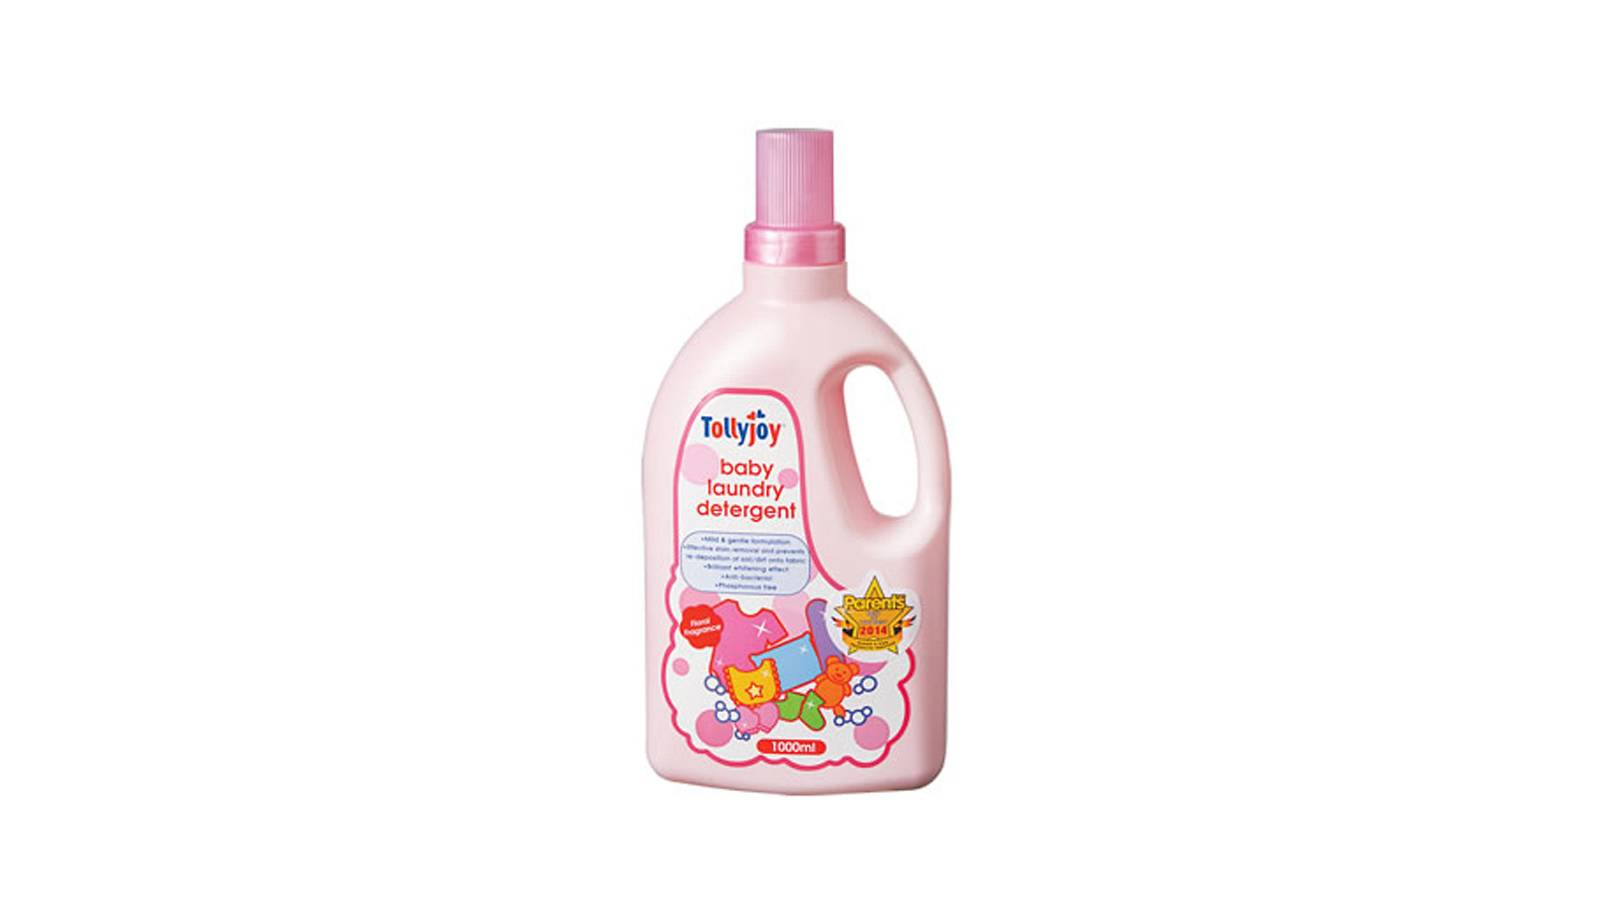 Babies-BUYER'S-GUIDE-7-best-laundry-detergents-for-baby-TOLLYJOY